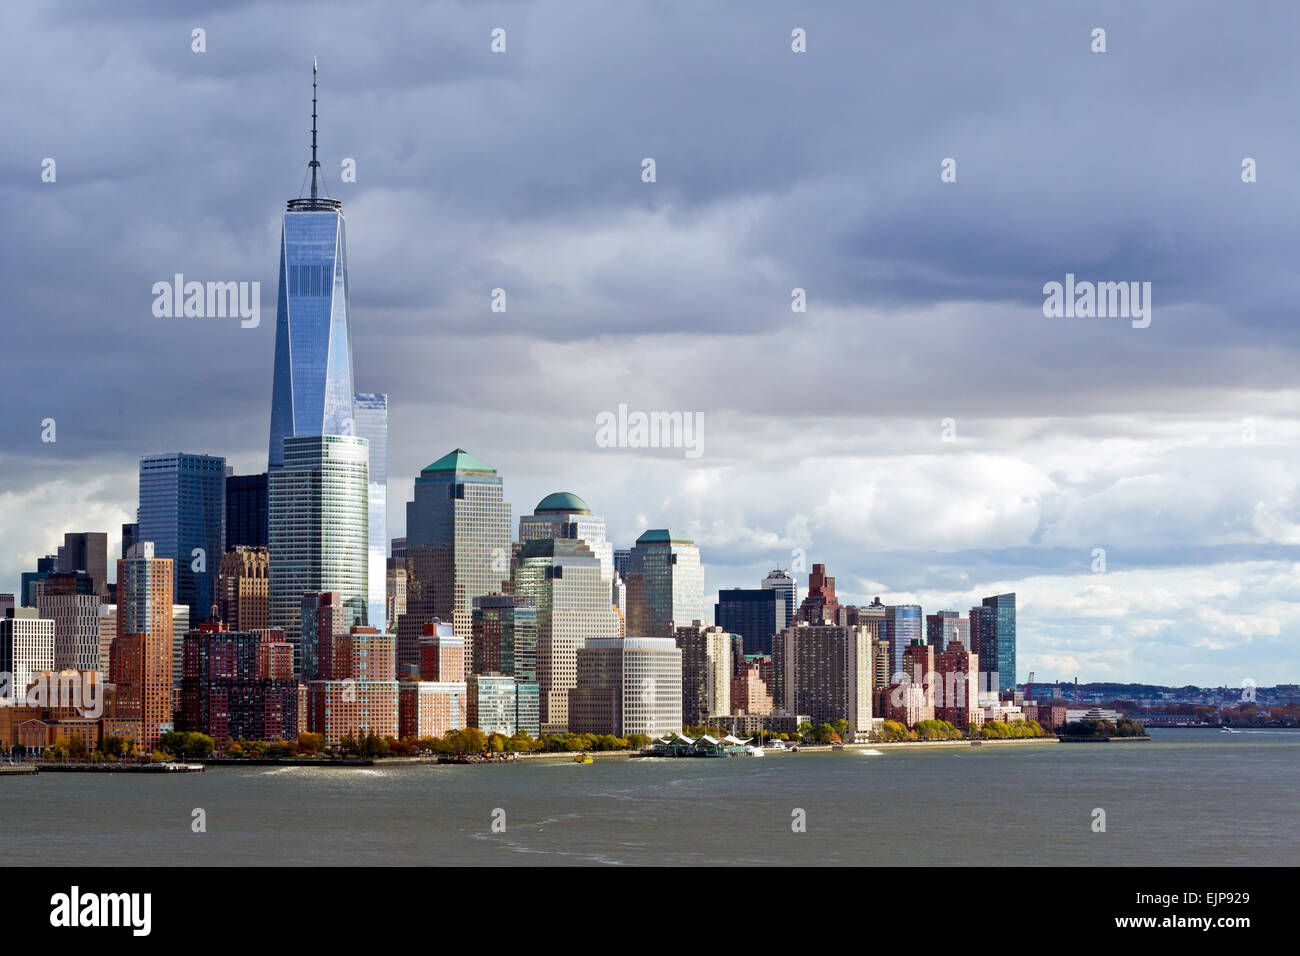 One World Trade Center and Downtown Manhattan across the Hudson River, New York, United States of America - Stock Image